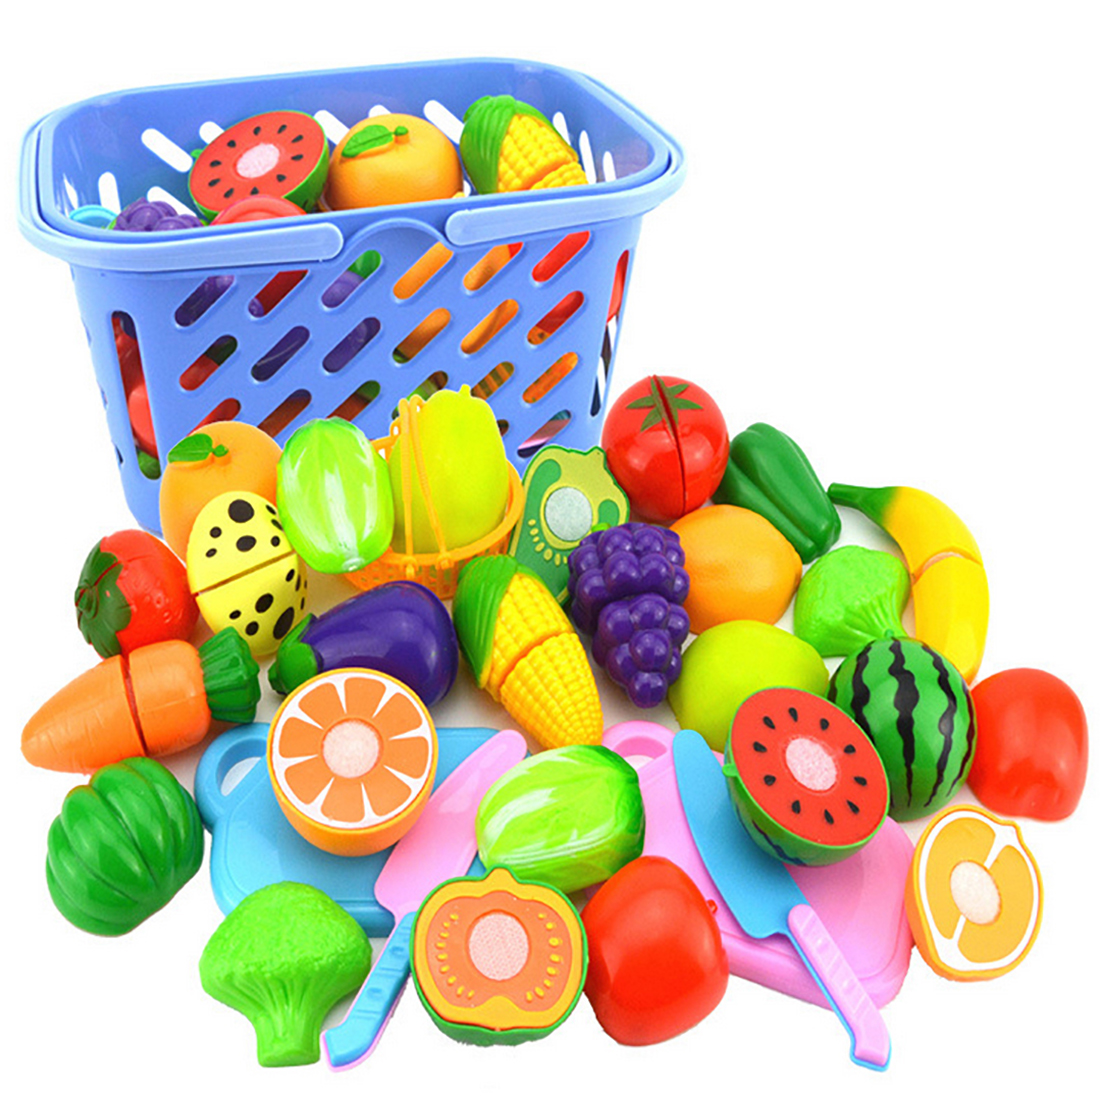 23Pcs/Set Plastic Fruit Vegetables Cutting Toy Early Development and Education Toy for Baby - Color Random